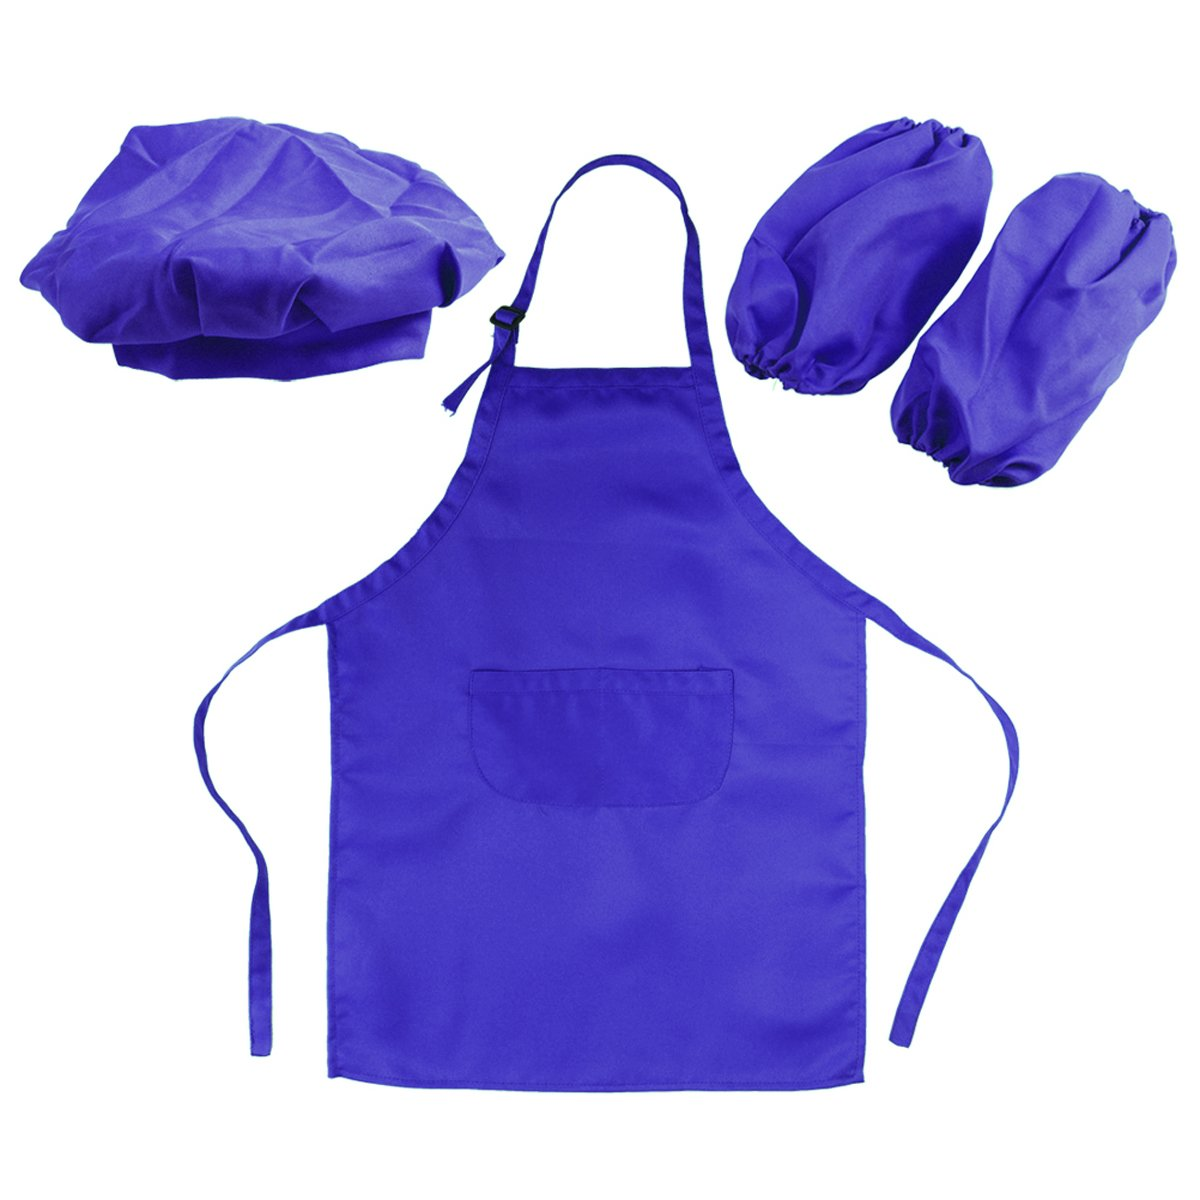 OUNONA Kids' Chef Kit - Kids Kitchen Gift Playset with Chef's Hat Apron Cooking Sleeve for Cooking(Blue)